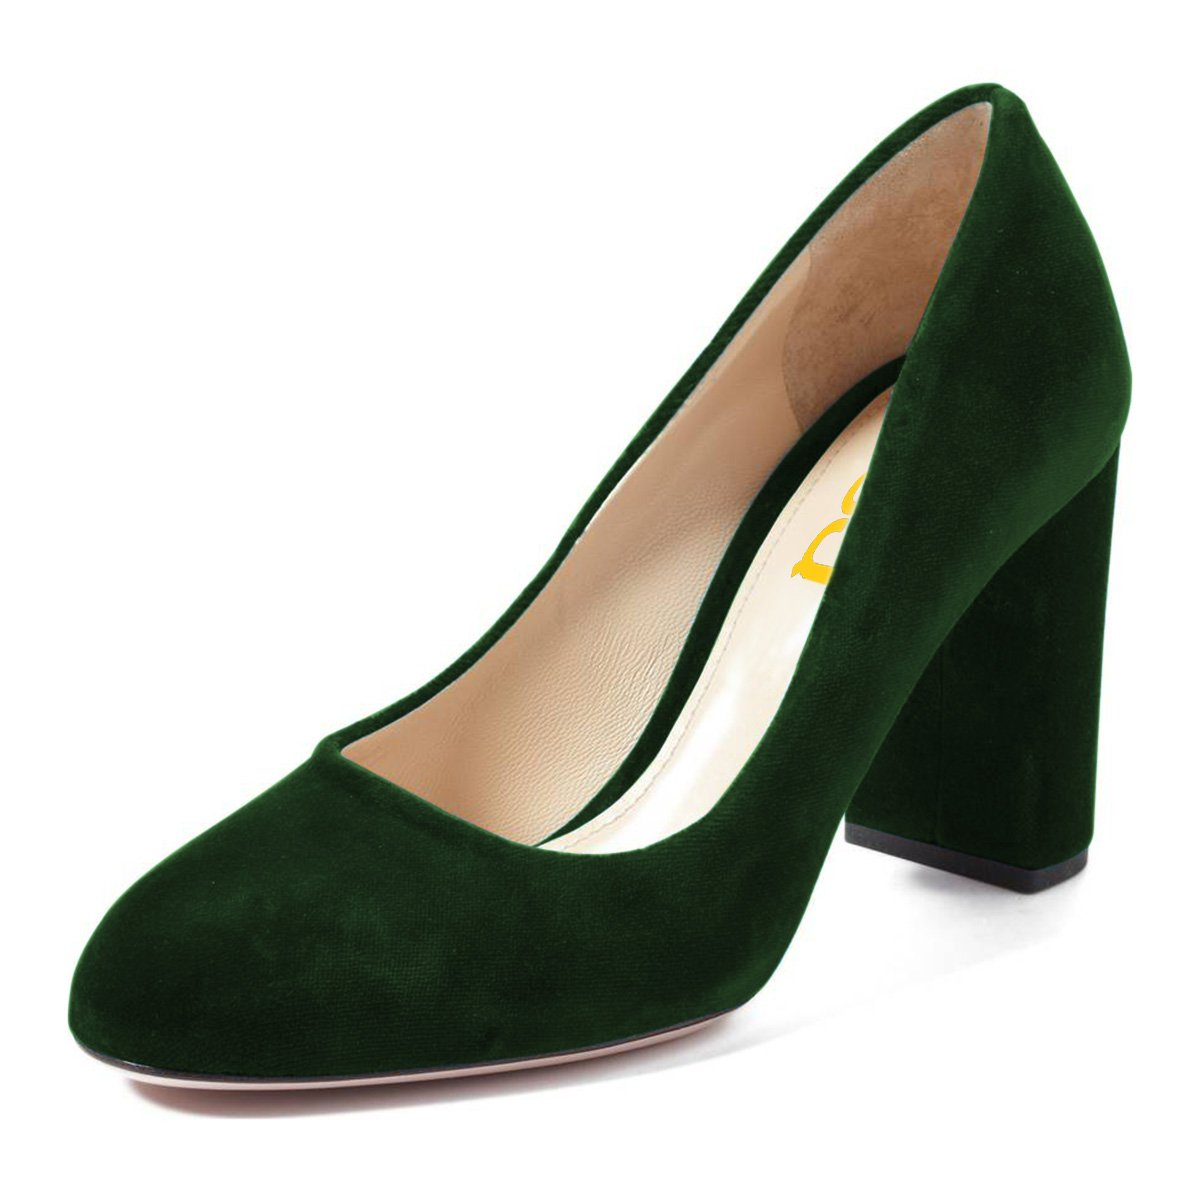 FSJ Women Classic Round Toe Velvet Pumps Chunky High Heels Slip On Office Dress Shoes Size 4-15 US B0784B35H9 14 M US|Green